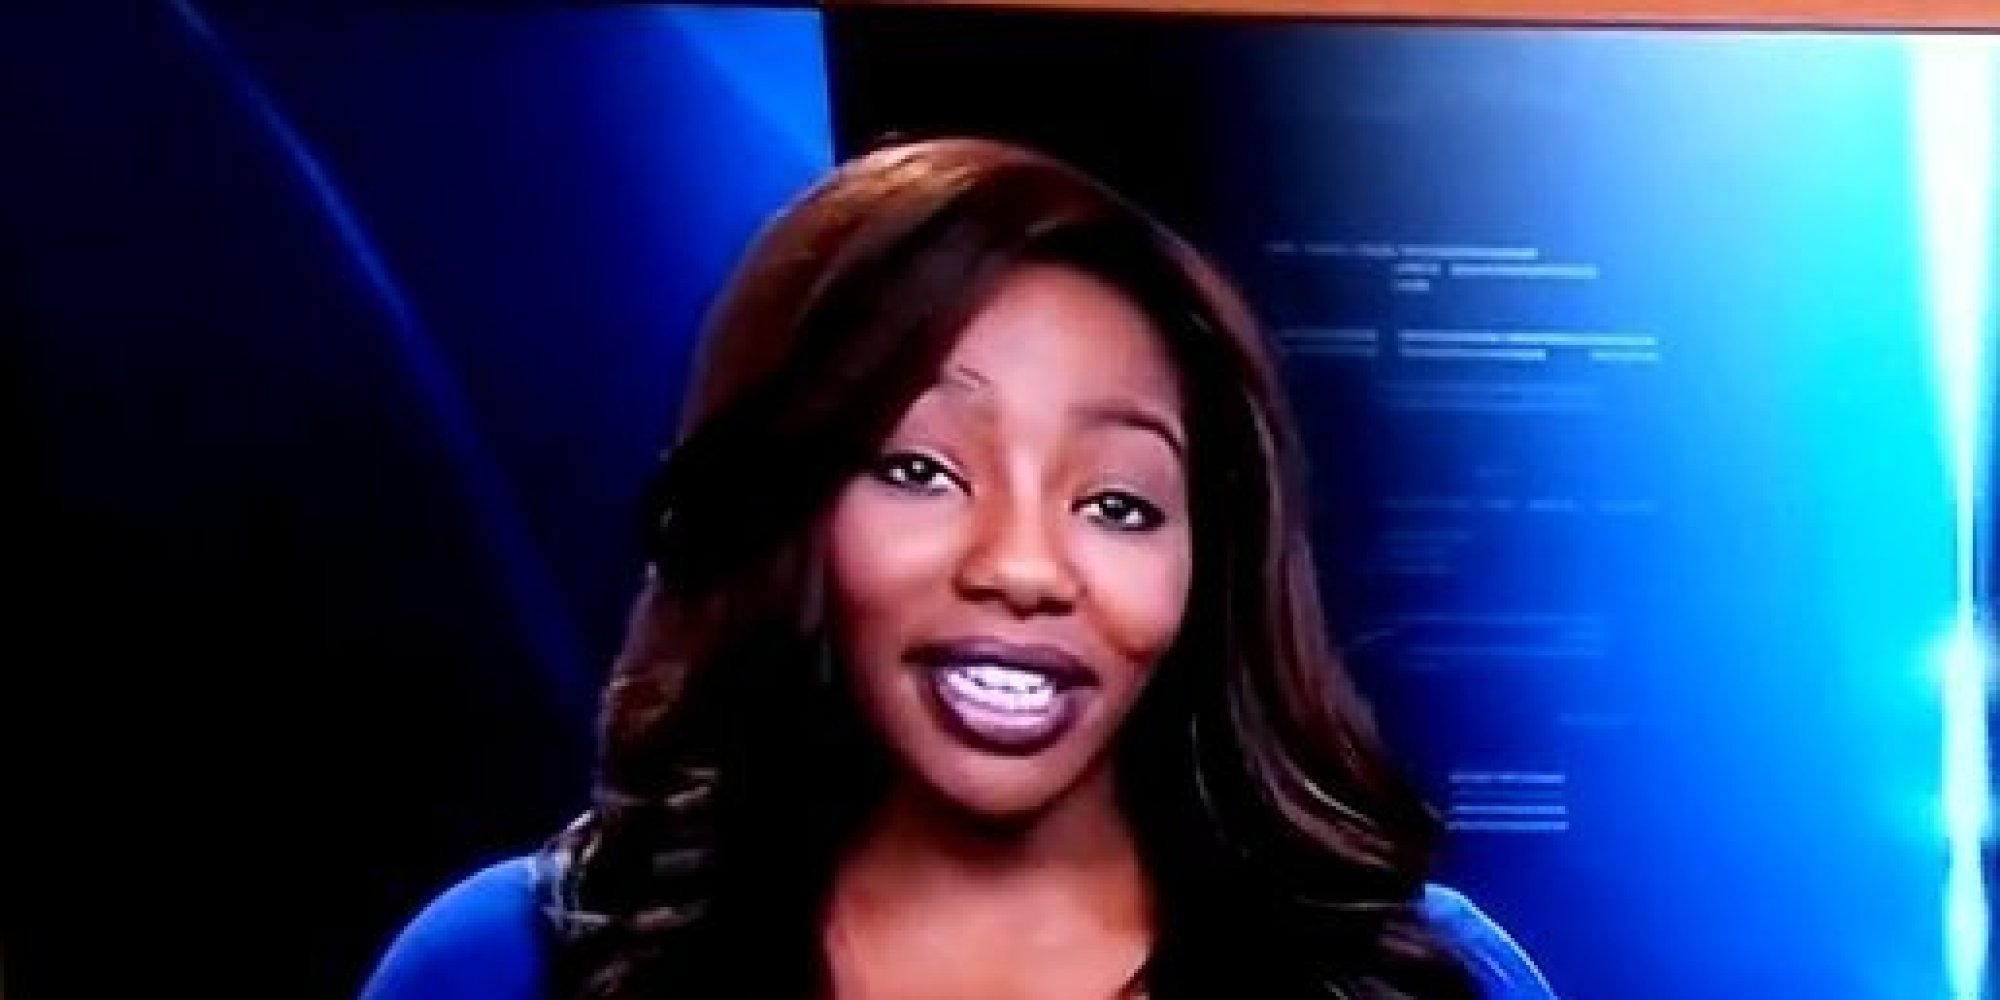 Charlo greene ktva 11 news reporter quits on air says f it